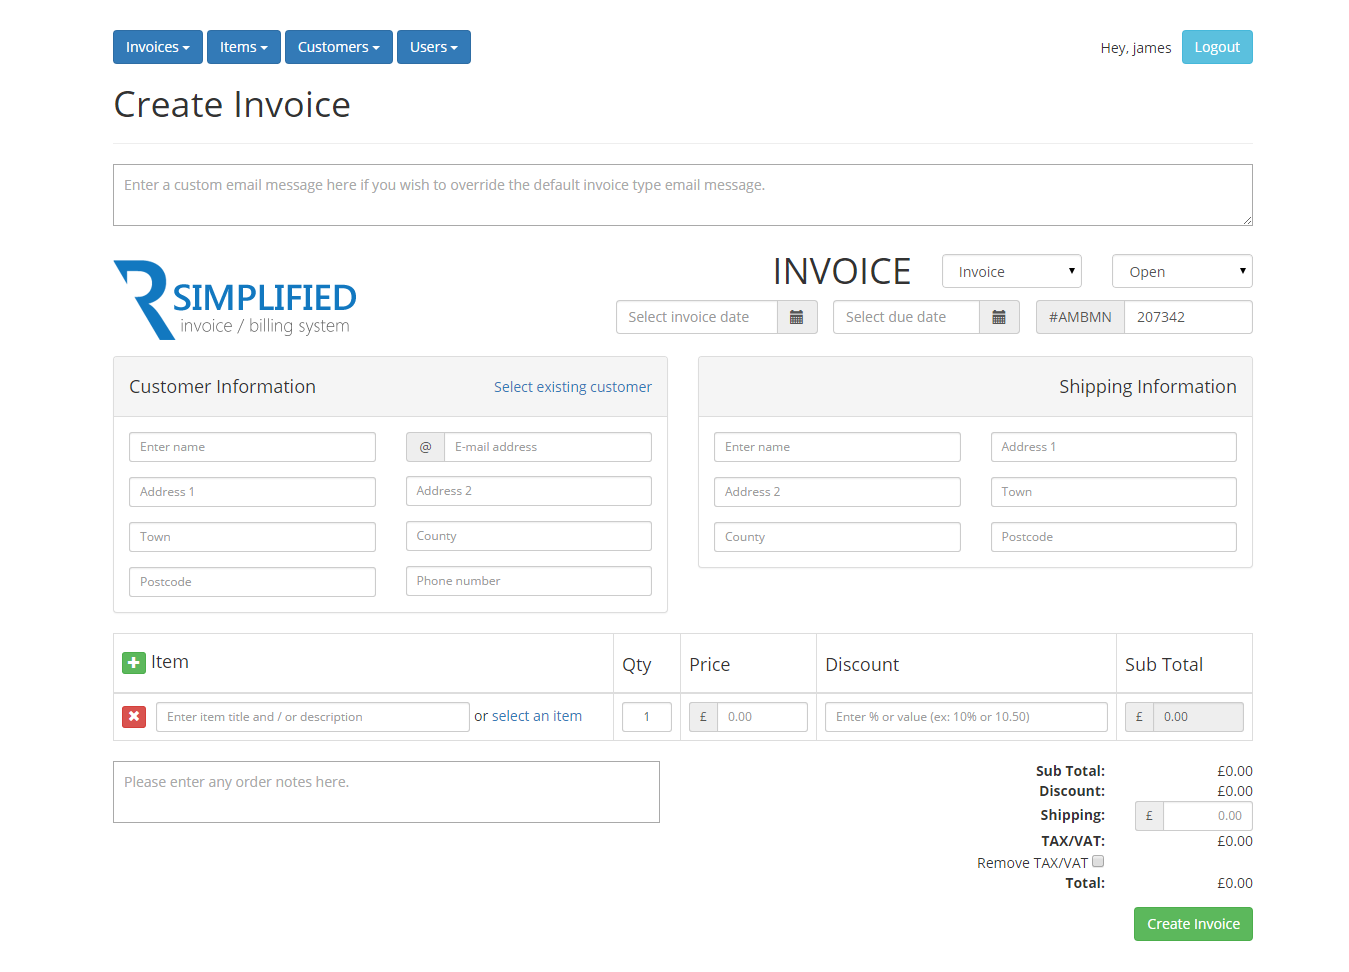 Breakupus  Nice Simplified Php Invoice  Billing System By Rebootdigitaluk  With Inspiring  Createinvoicepng  With Enchanting Free Auto Repair Invoice Software Also Invoice Template Generator In Addition Copy Of Invoice Template And What Is Factory Invoice Price As Well As Auto Repair Shop Invoice Additionally Pay Your Invoice From Codecanyonnet With Breakupus  Inspiring Simplified Php Invoice  Billing System By Rebootdigitaluk  With Enchanting  Createinvoicepng  And Nice Free Auto Repair Invoice Software Also Invoice Template Generator In Addition Copy Of Invoice Template From Codecanyonnet